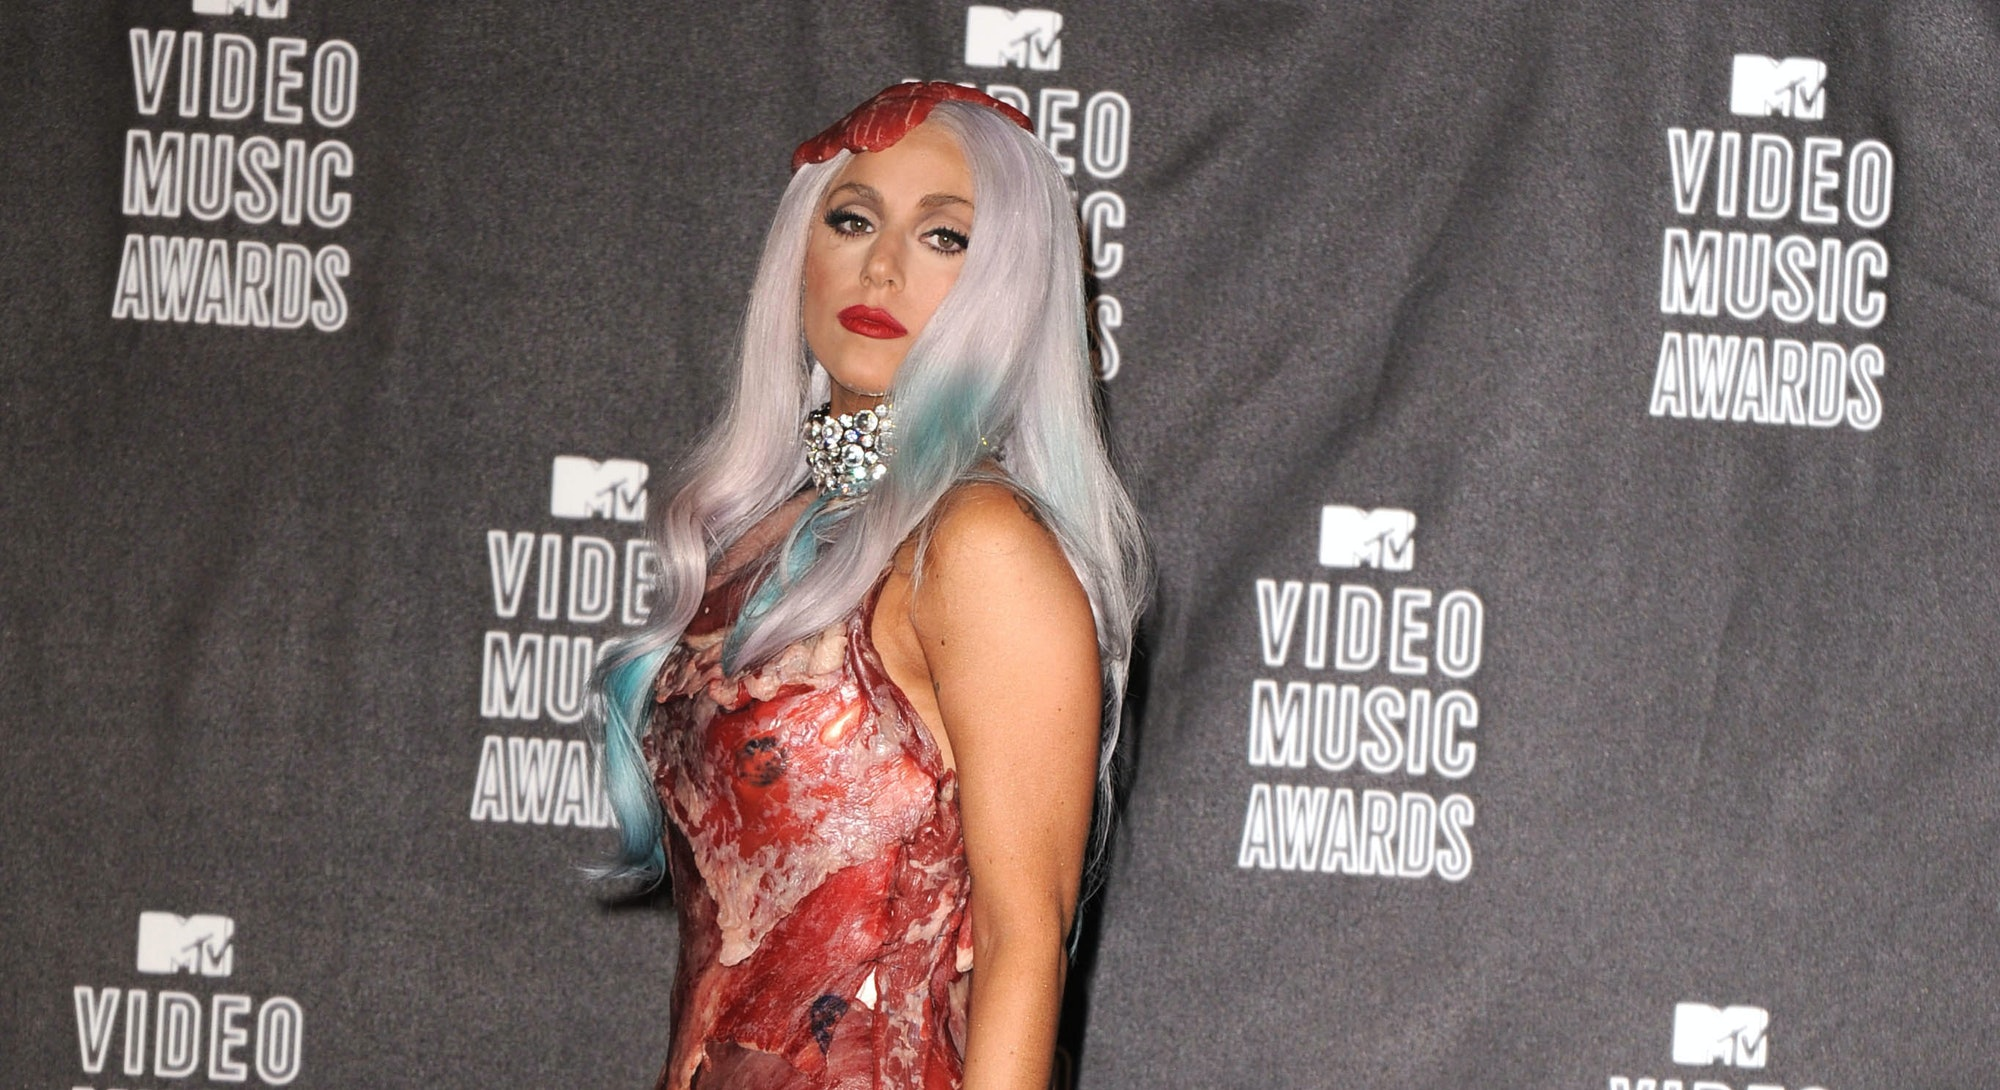 The 10 Most Infamous Moments In MTV Video Music Awards History. Photo via Steve Granitz/WireImage/Ge...